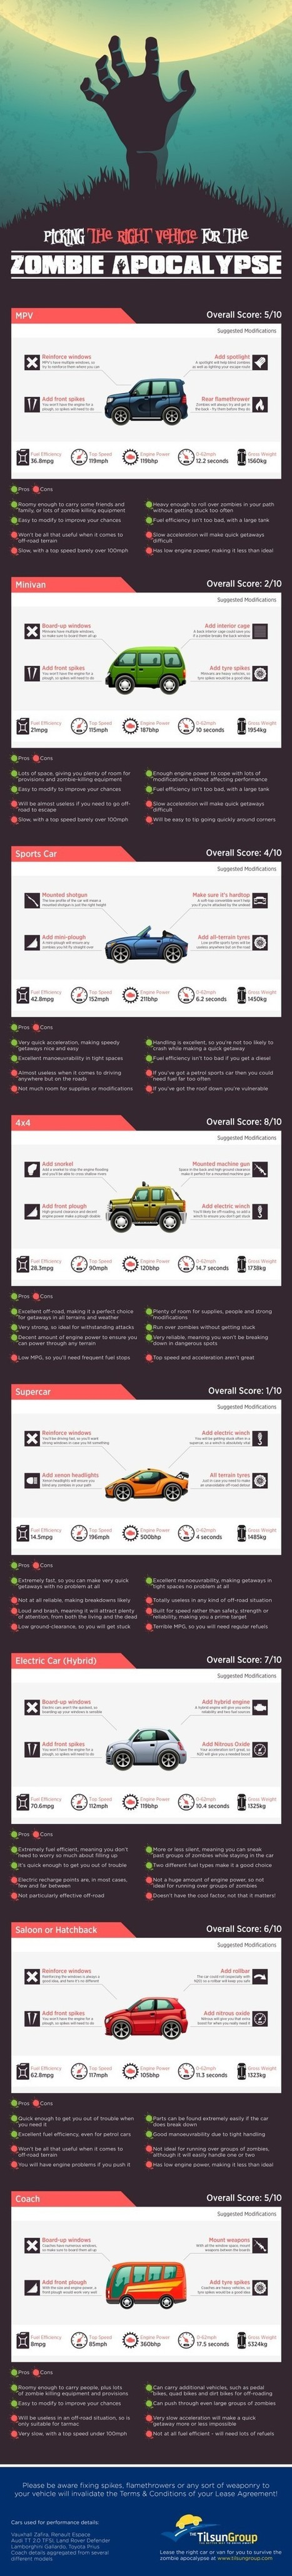 Picking the right vehicle for the zombie apocalypse [infographic] | Post Apocalypse | Scoop.it